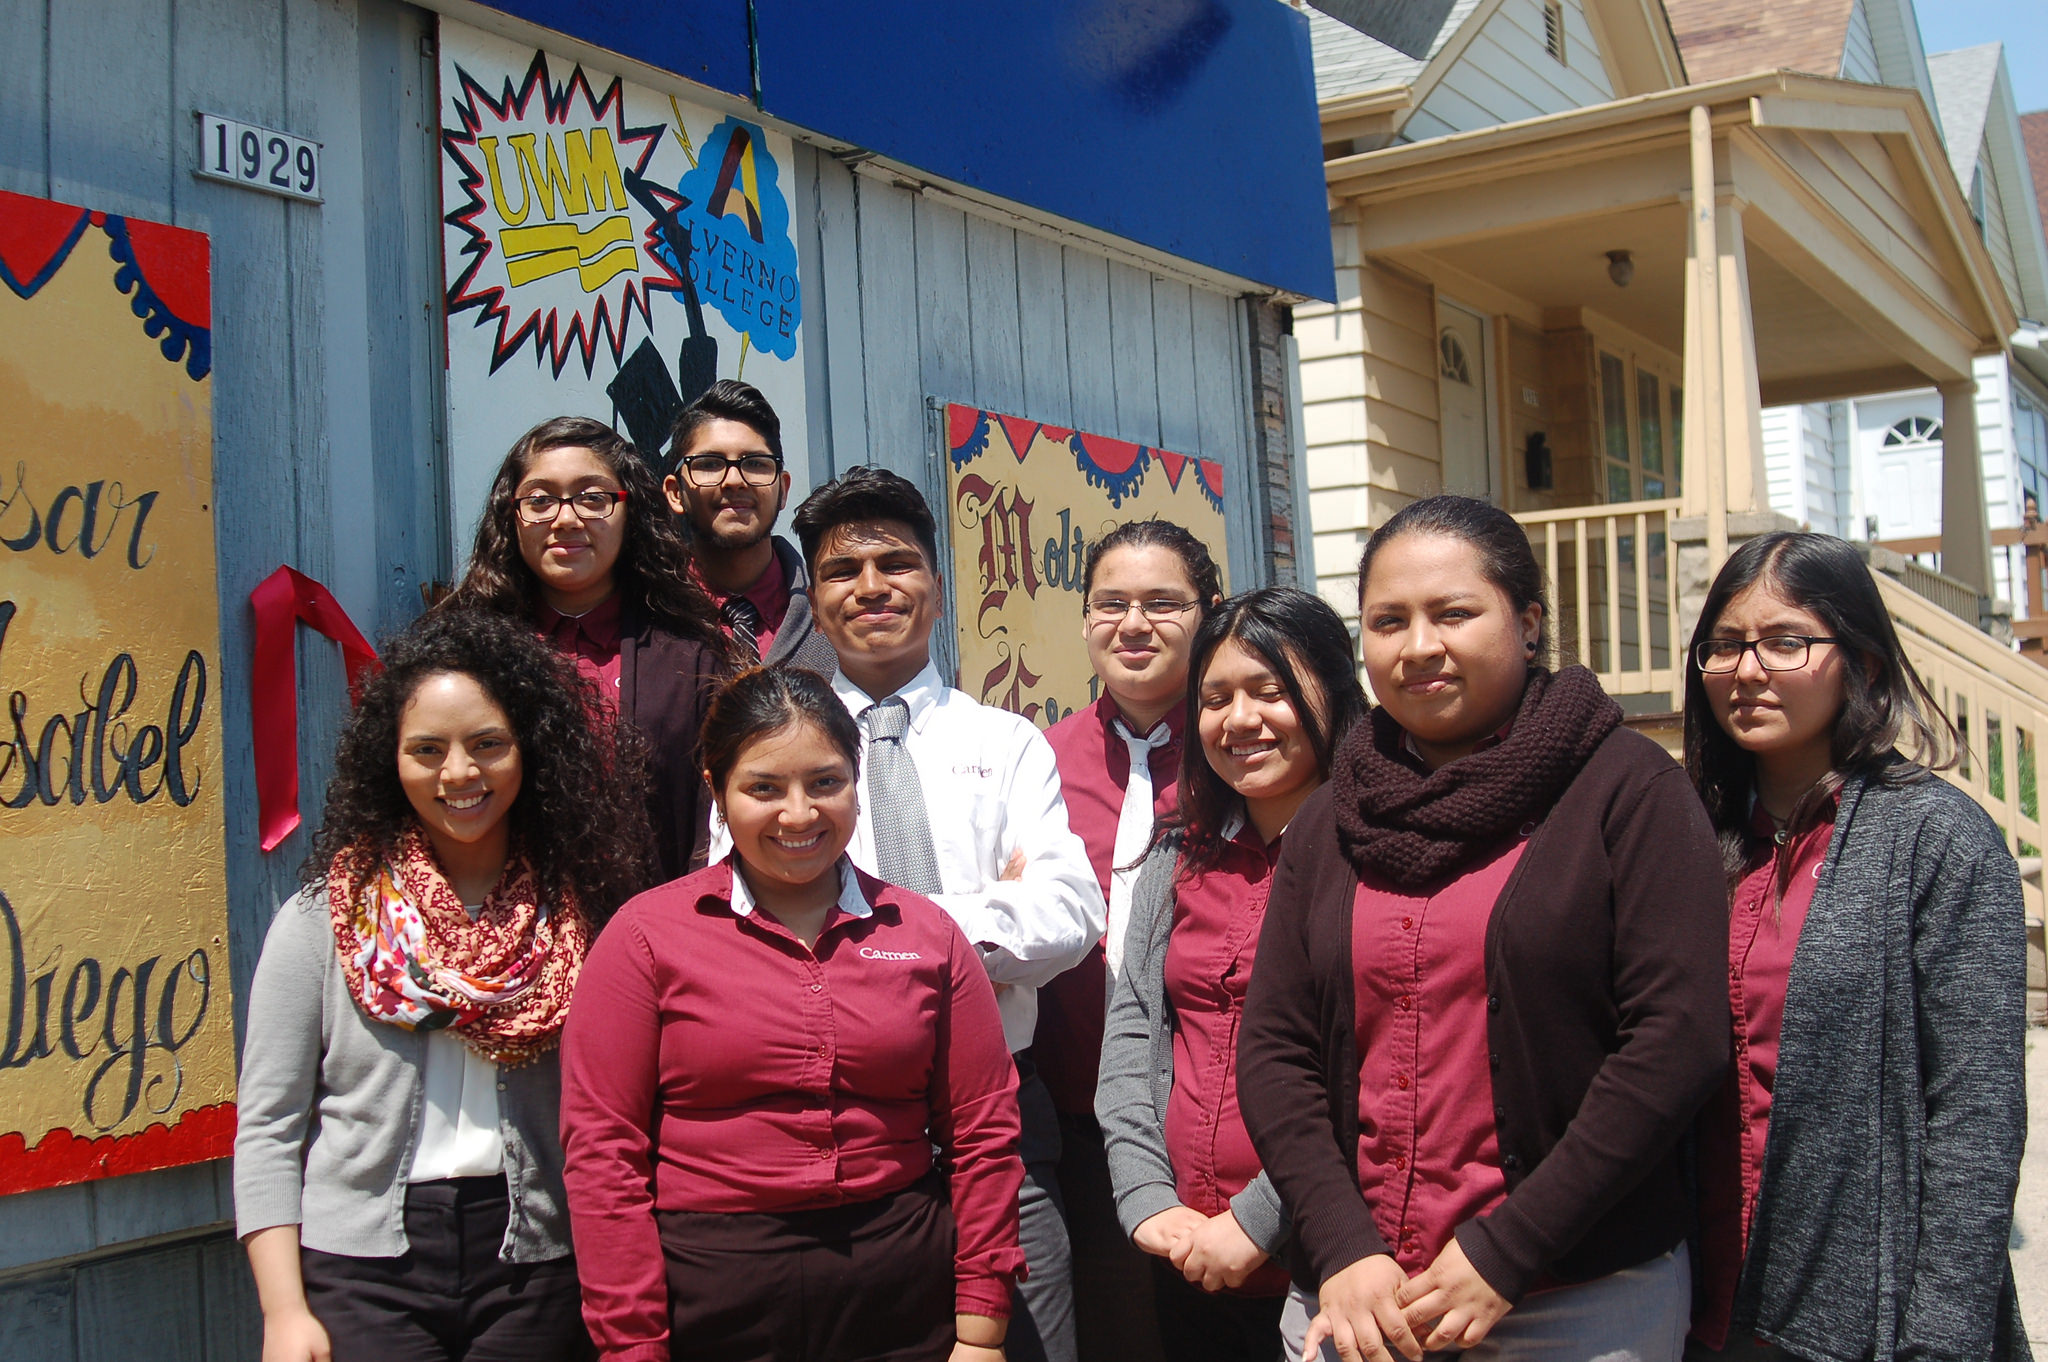 Members of the Carmen High School of Science and Technology's Safe and Sound Youth Council worked for two months to complete the mural project. (Photo by Edgar Mendez)